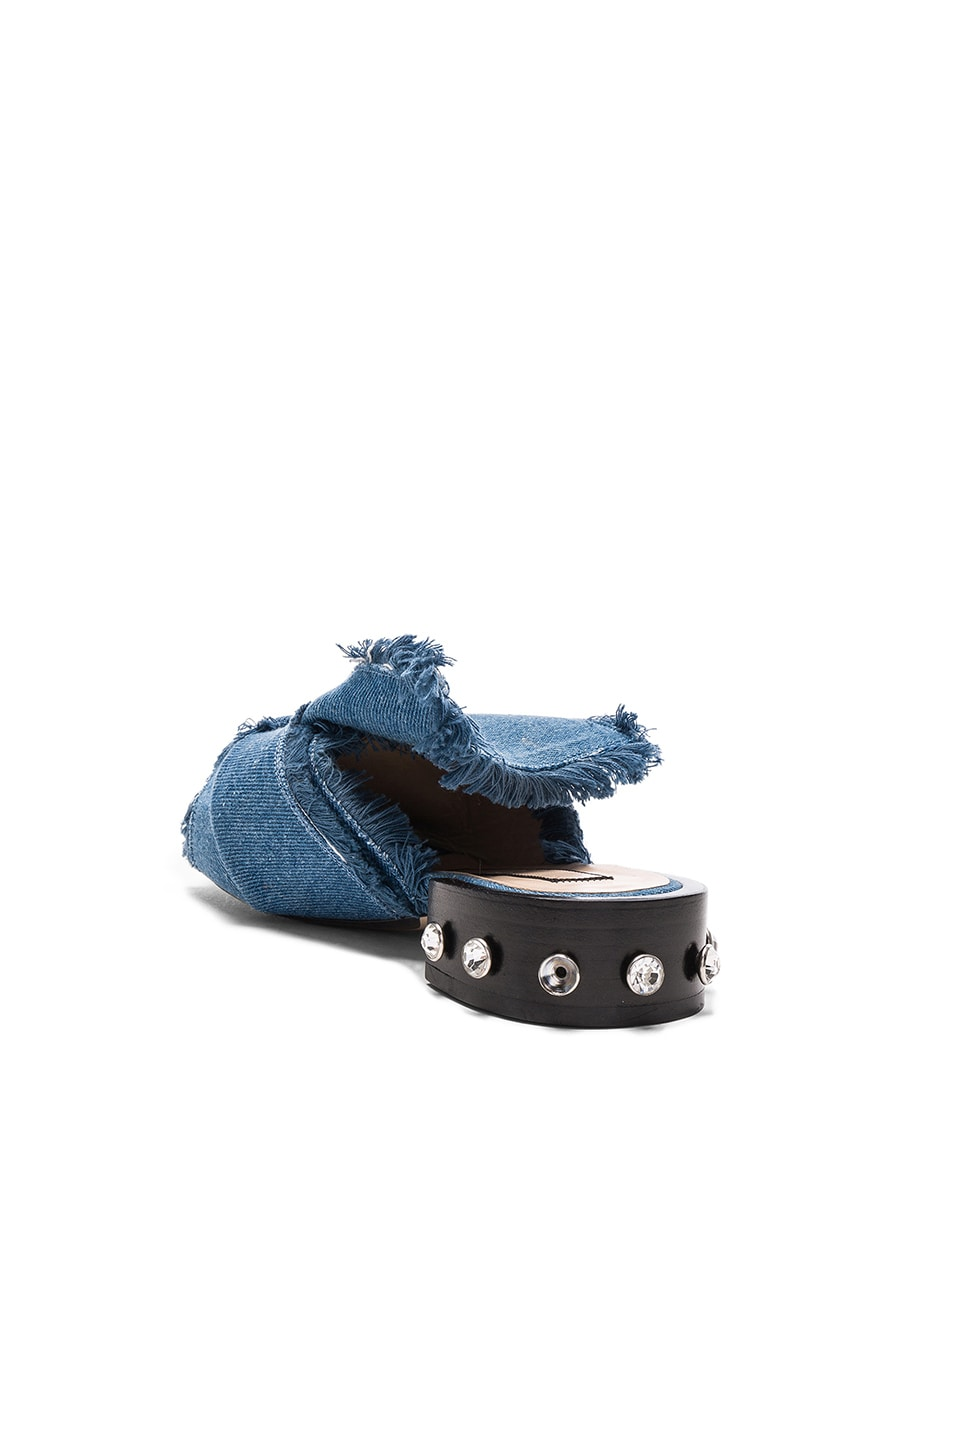 Image 3 of No. 21 Bow Denim Mules in Denim Blue